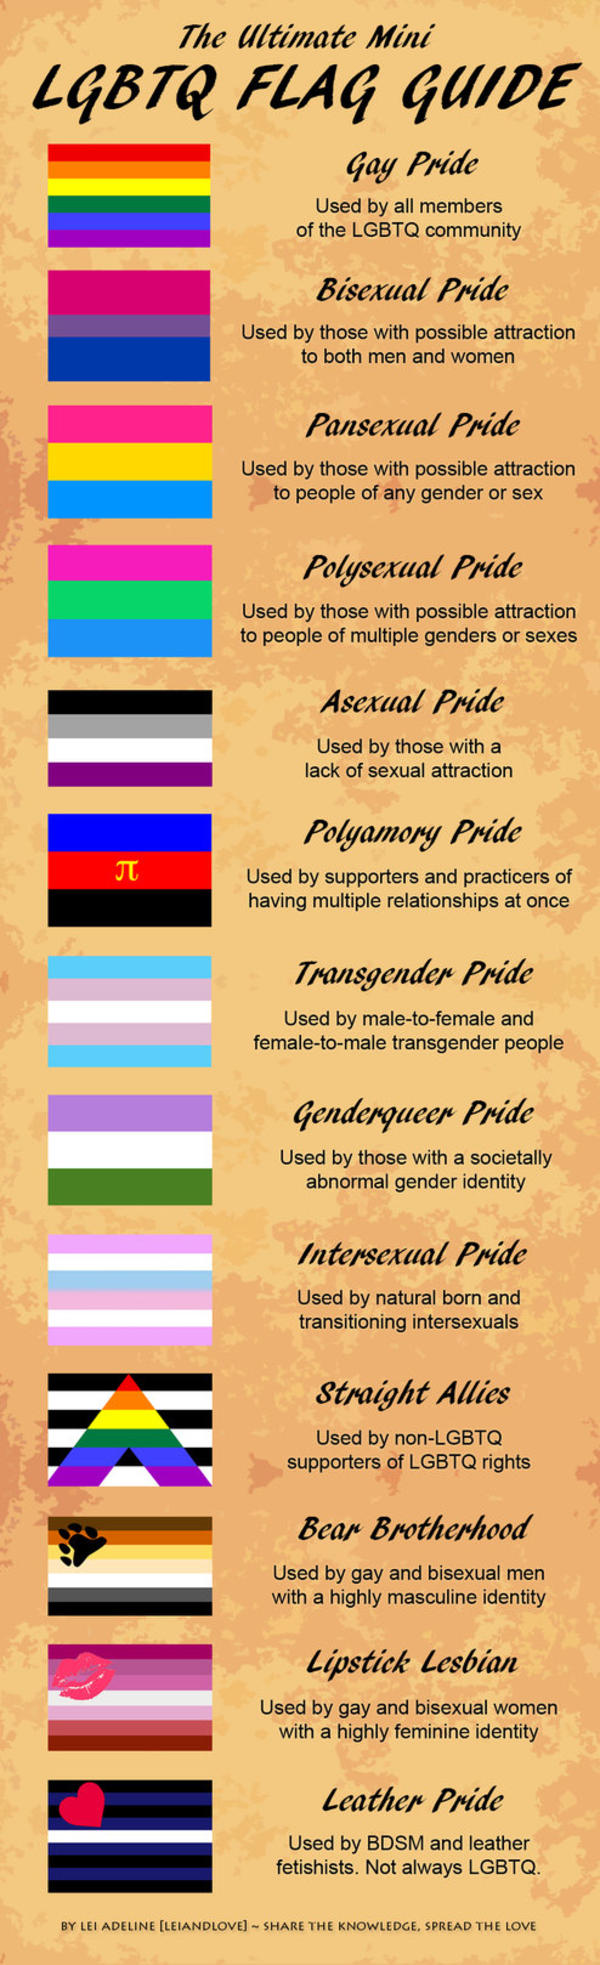 gay community and gay identity with the problematic of translation